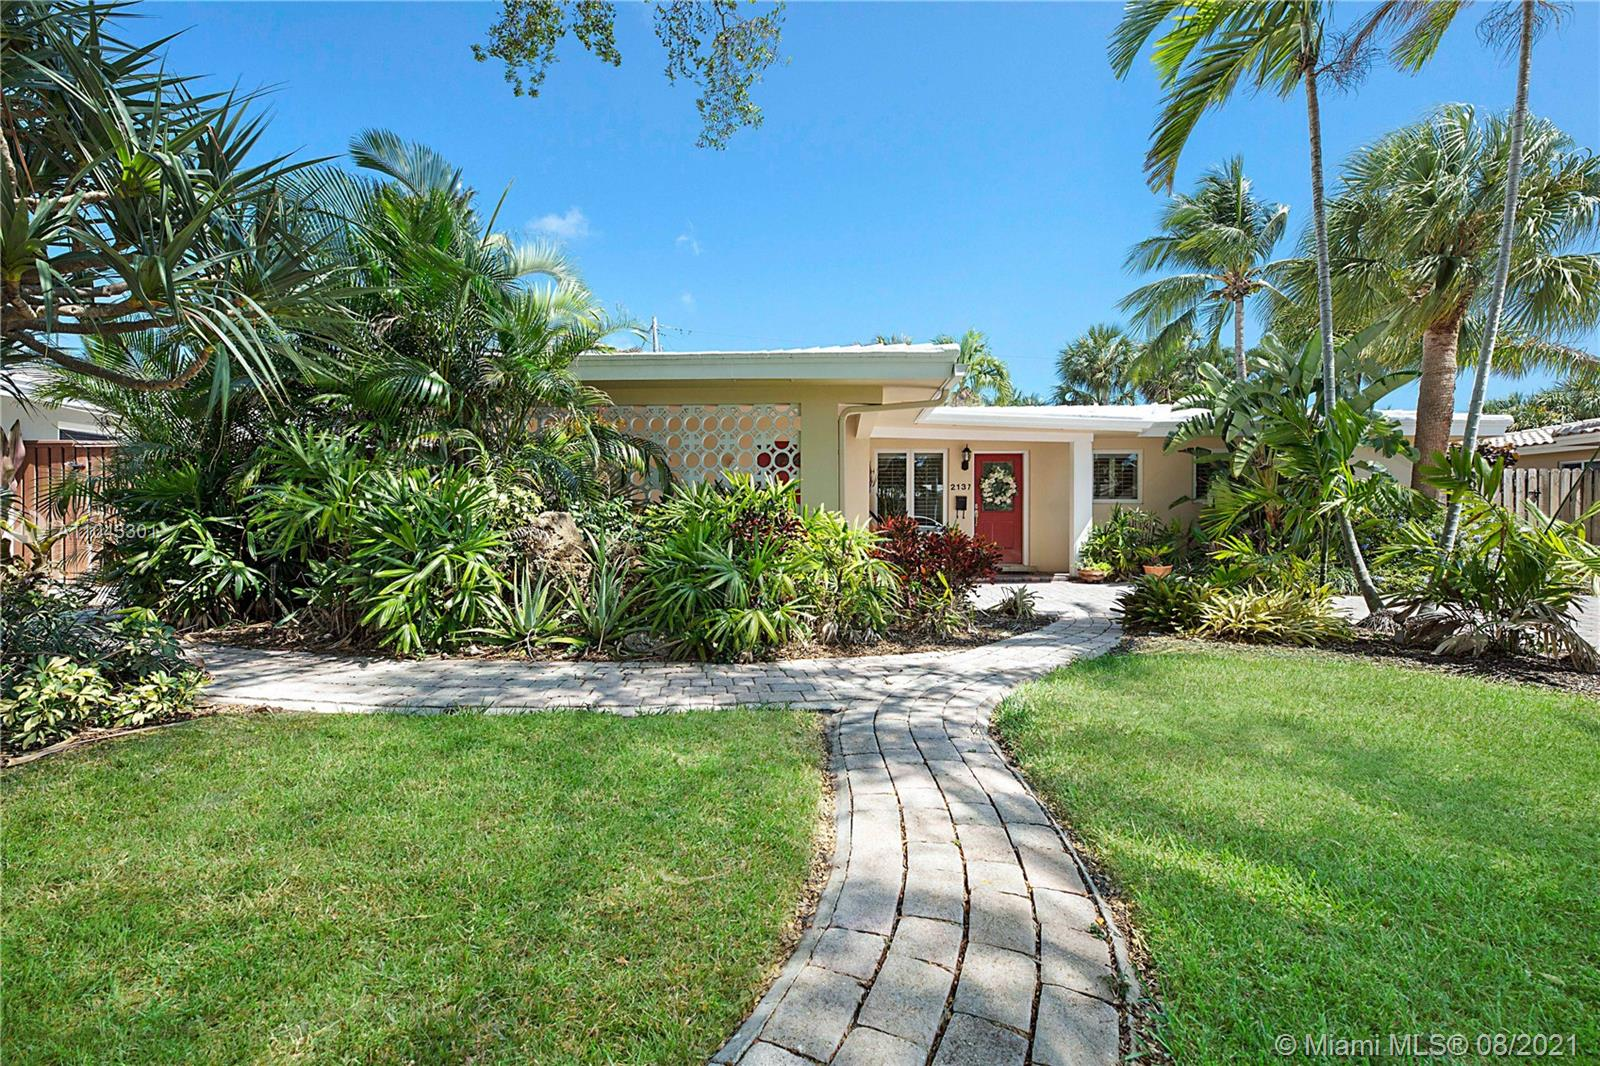 Imperial Point, 2137 NE 58th Ct, Fort Lauderdale, Florida 33308